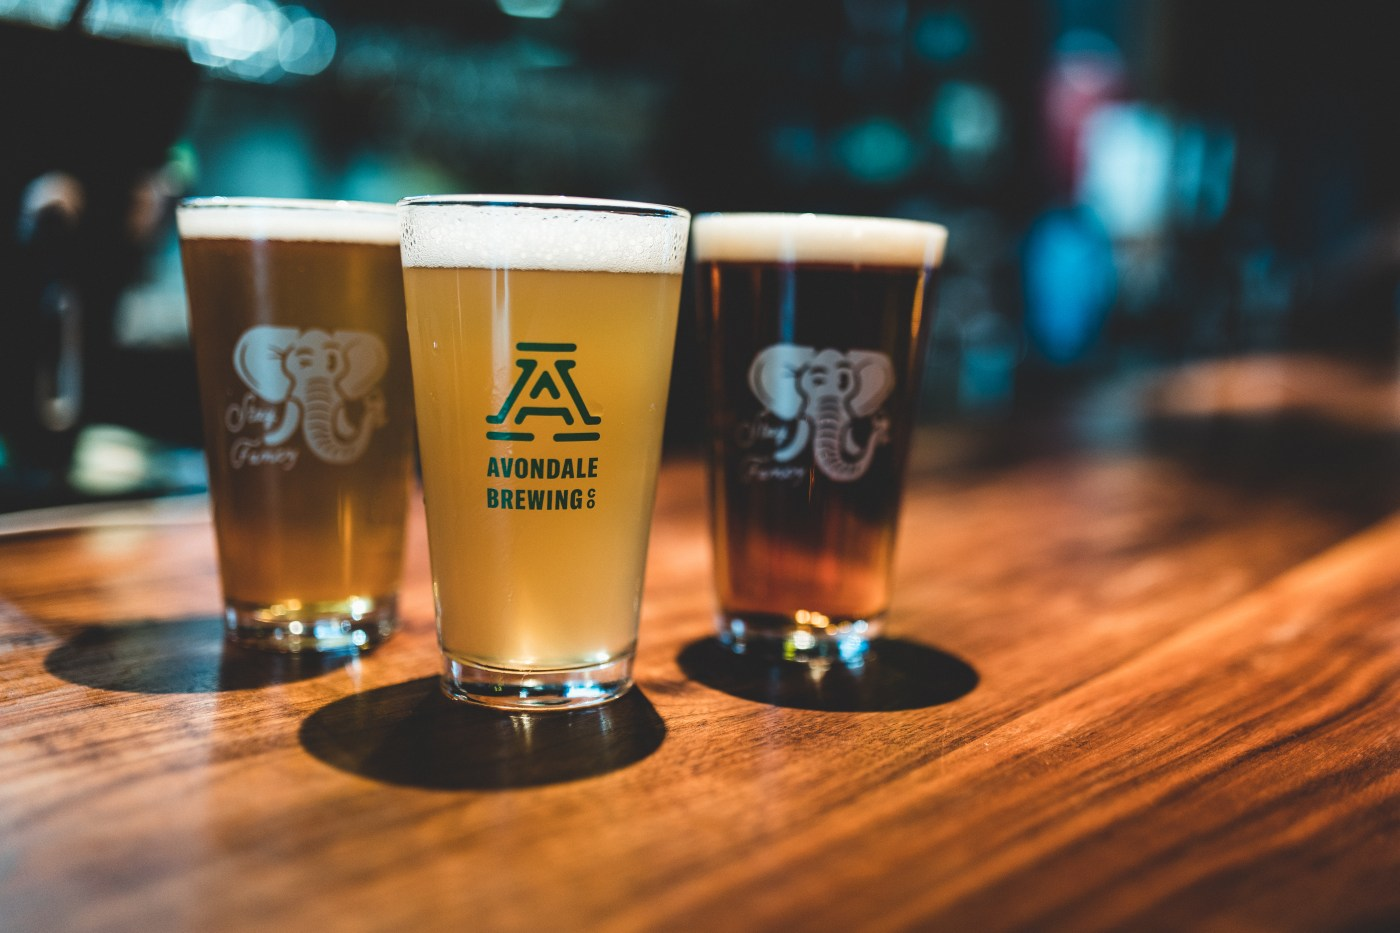 Beers from Avondale Brewing Co